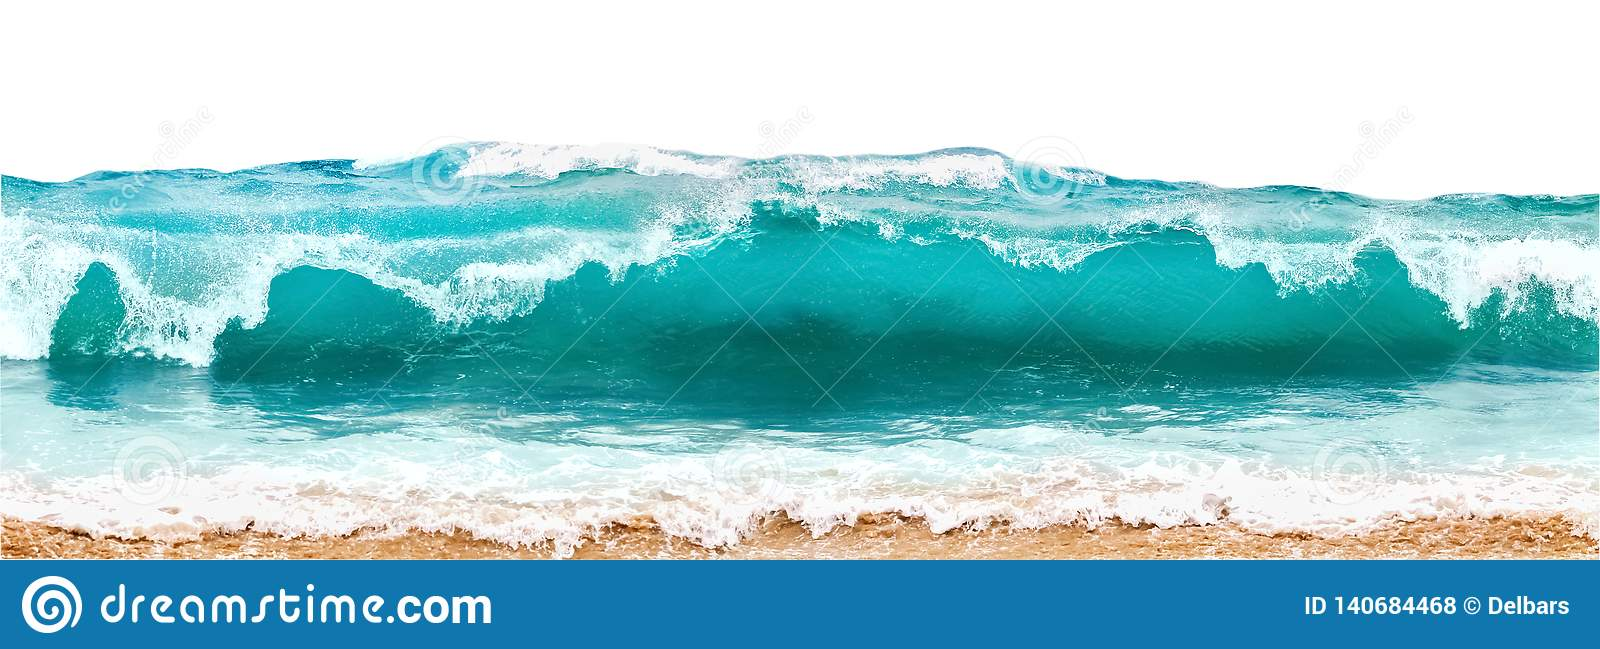 Blue and aquamarine color sea waves and yellow sand with white foam isolated on white background. Marine beach background.